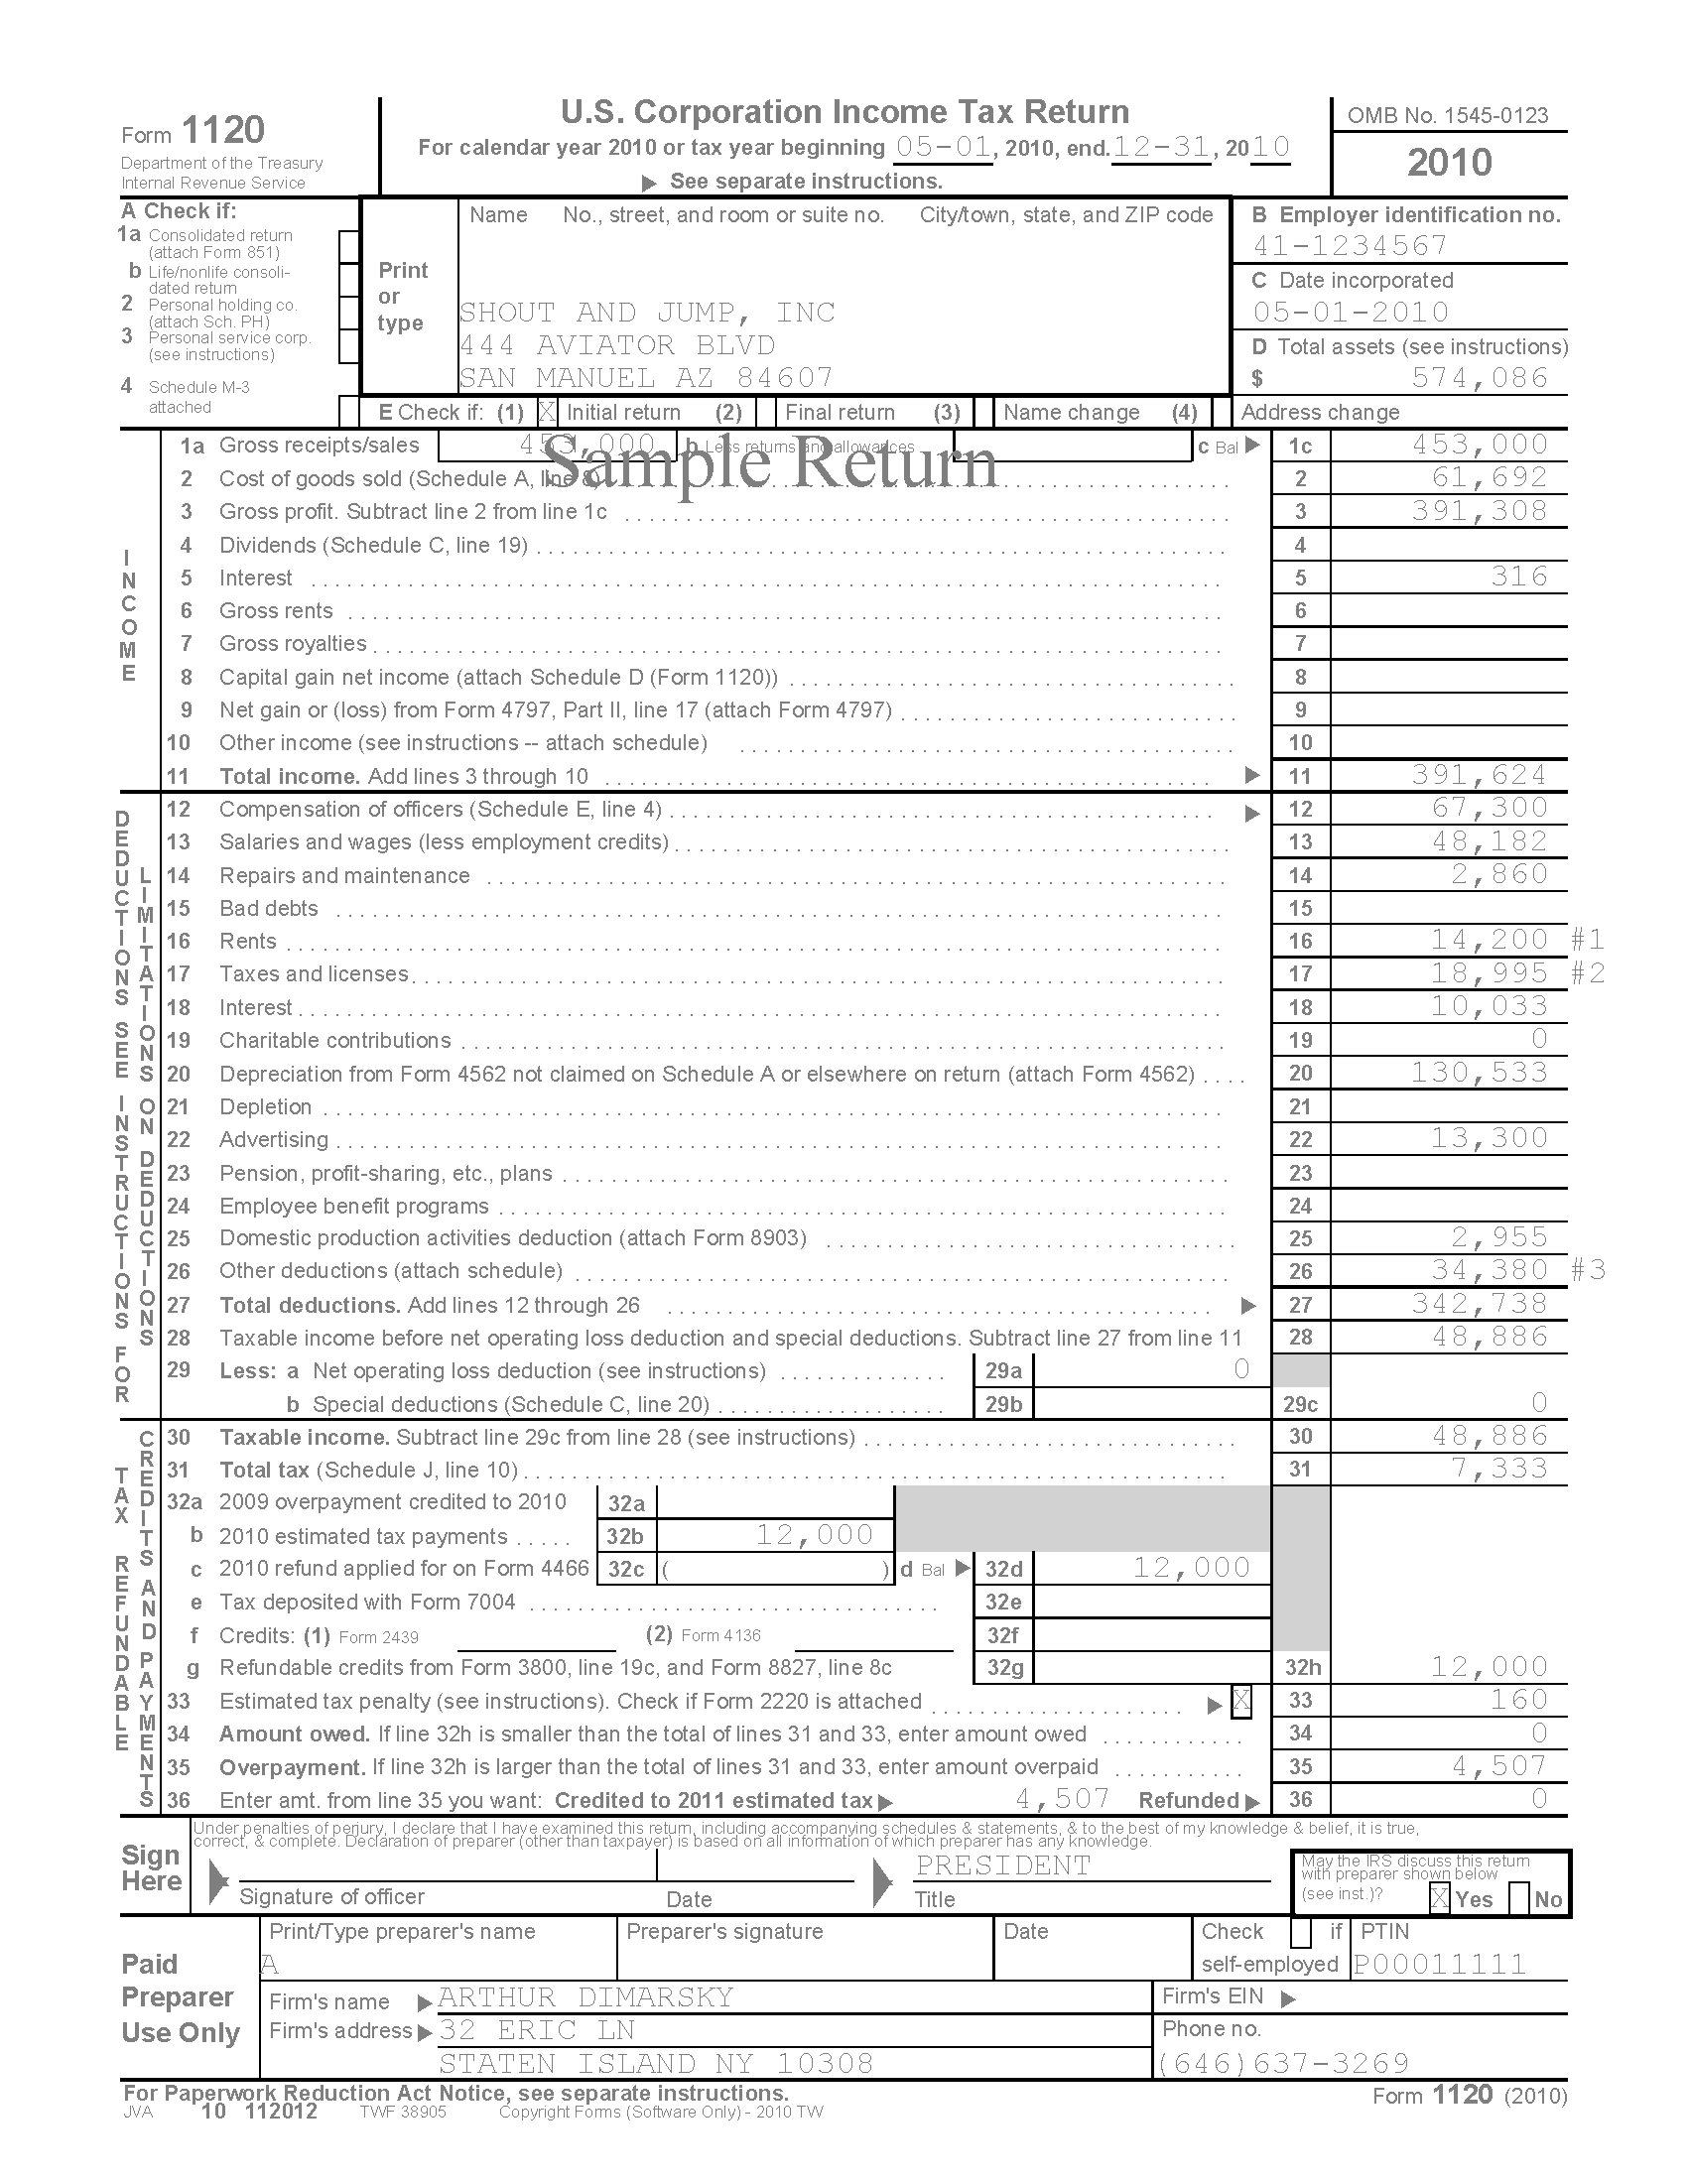 Maryland Personal Property Tax Return Instructions